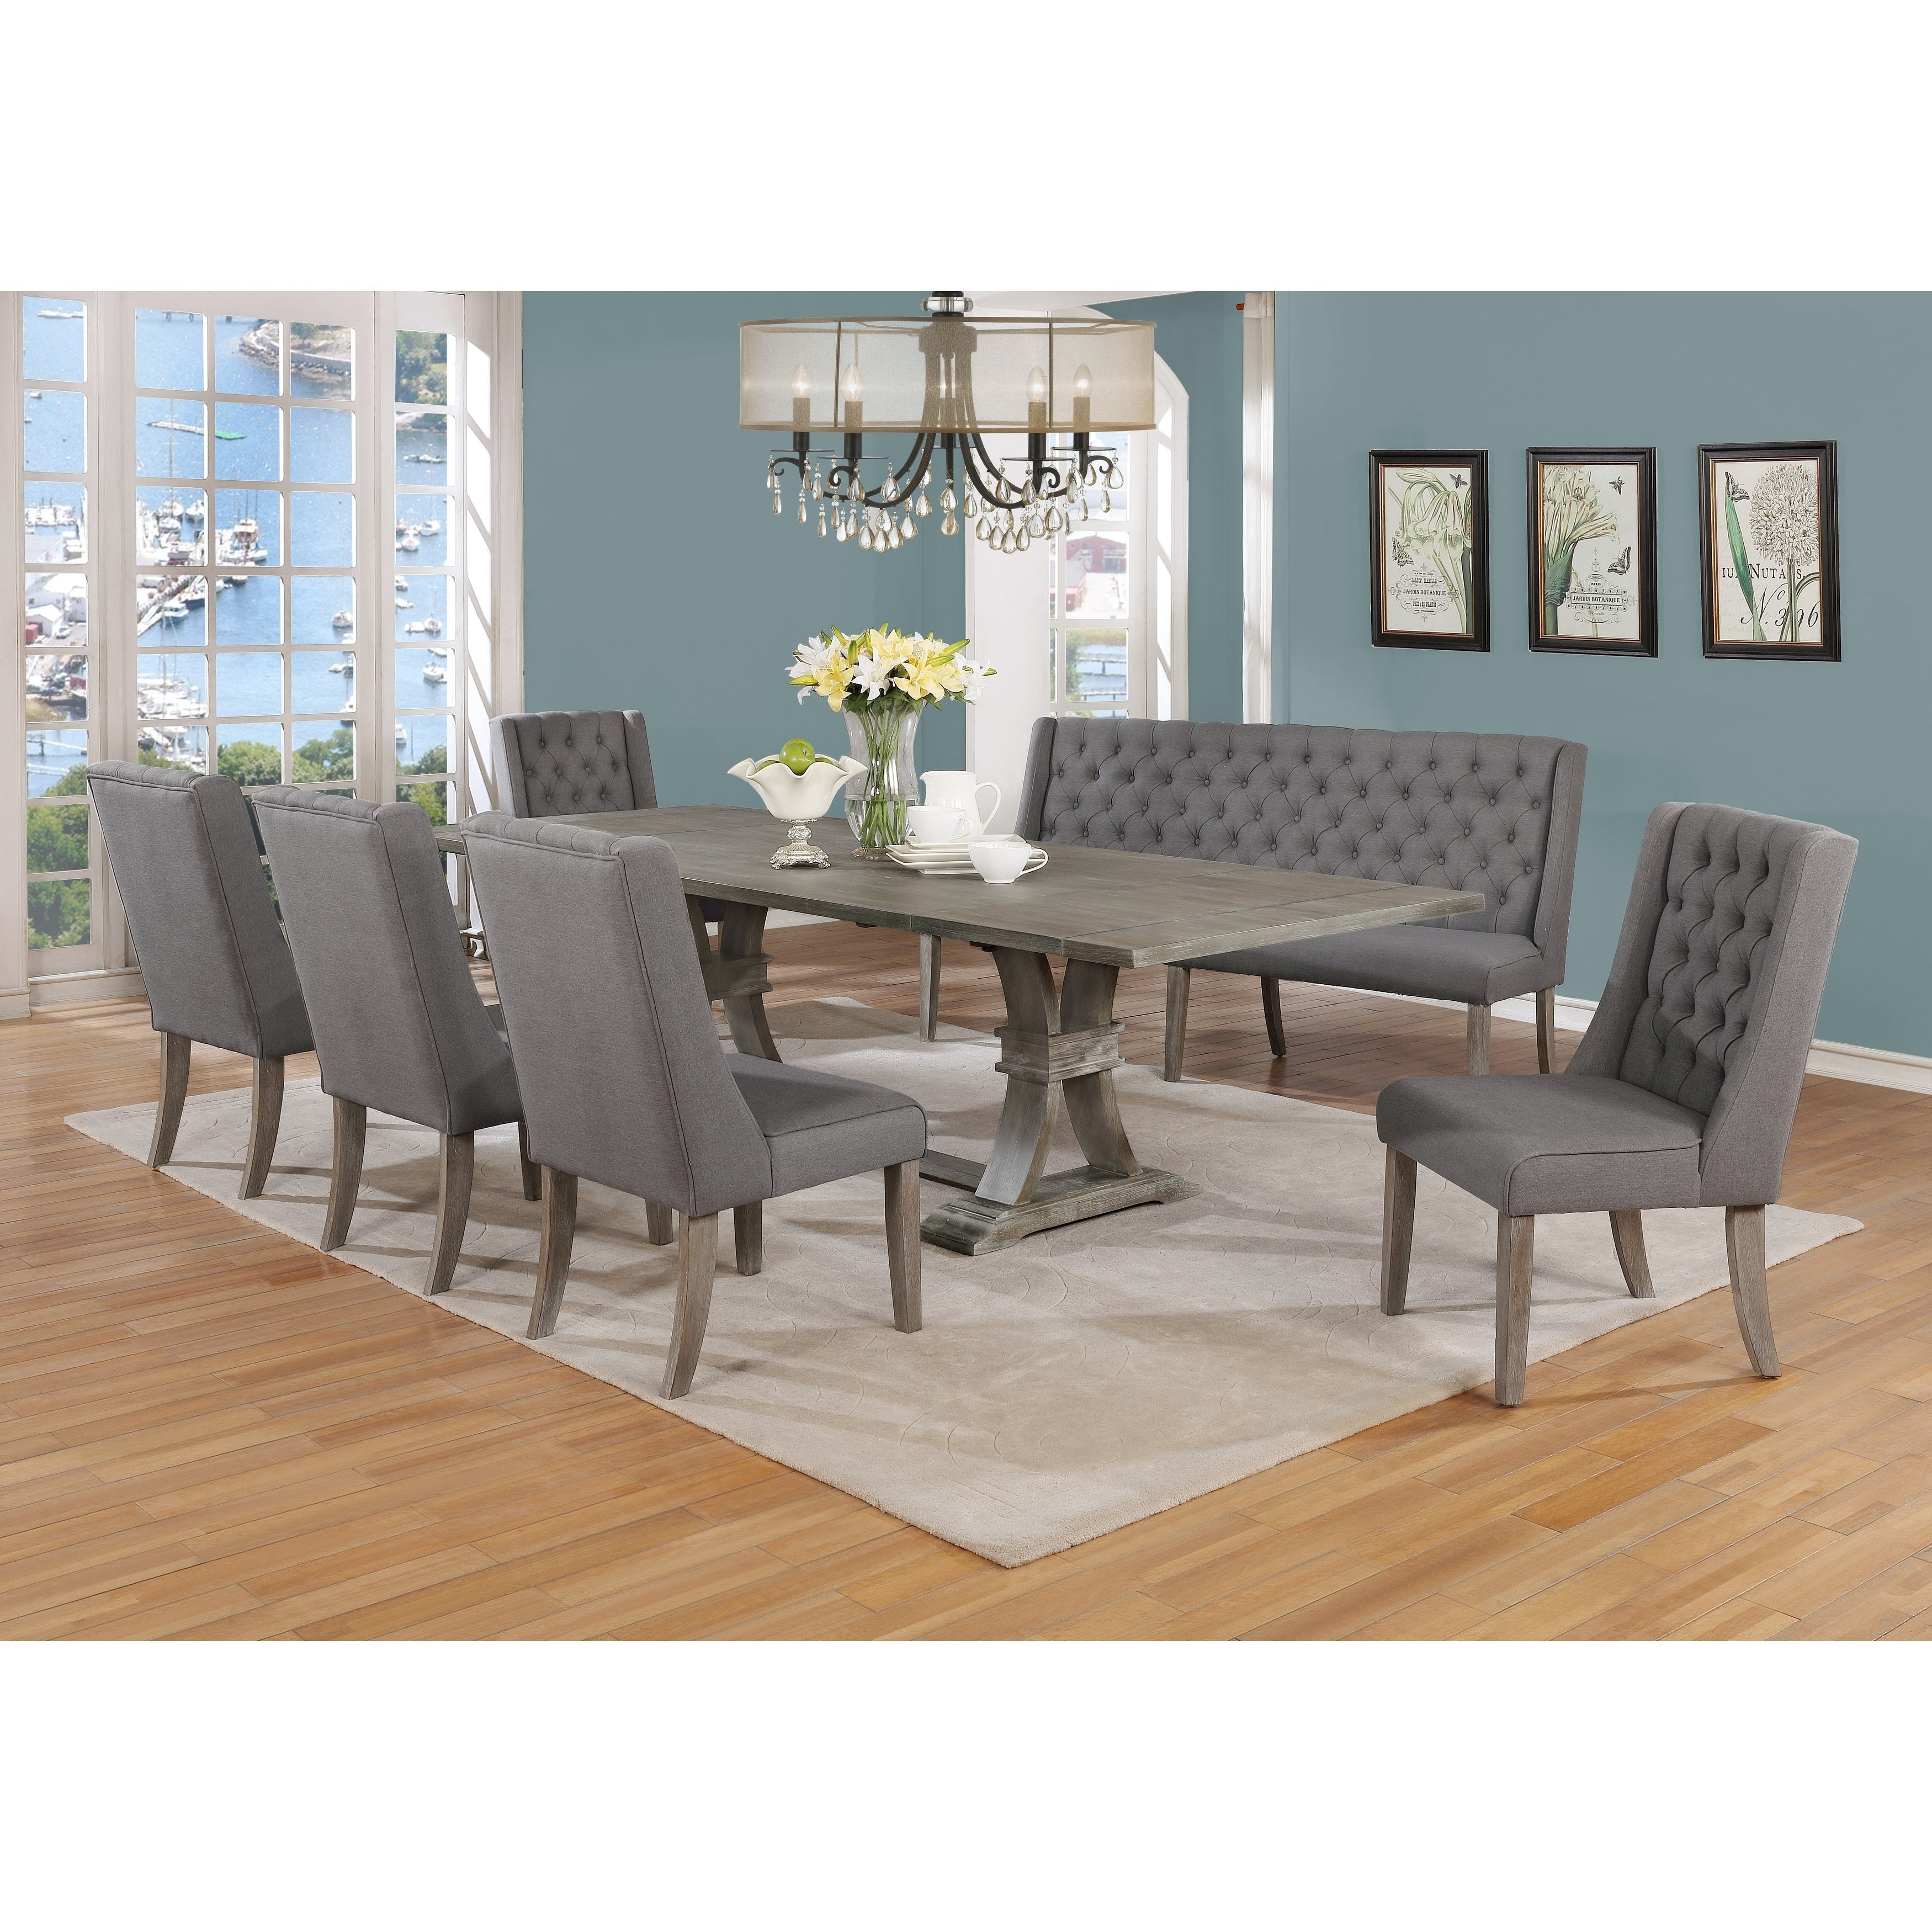 Best Quality Furniture Extending Rustic Grey 12-Piece Dining Set with Bench